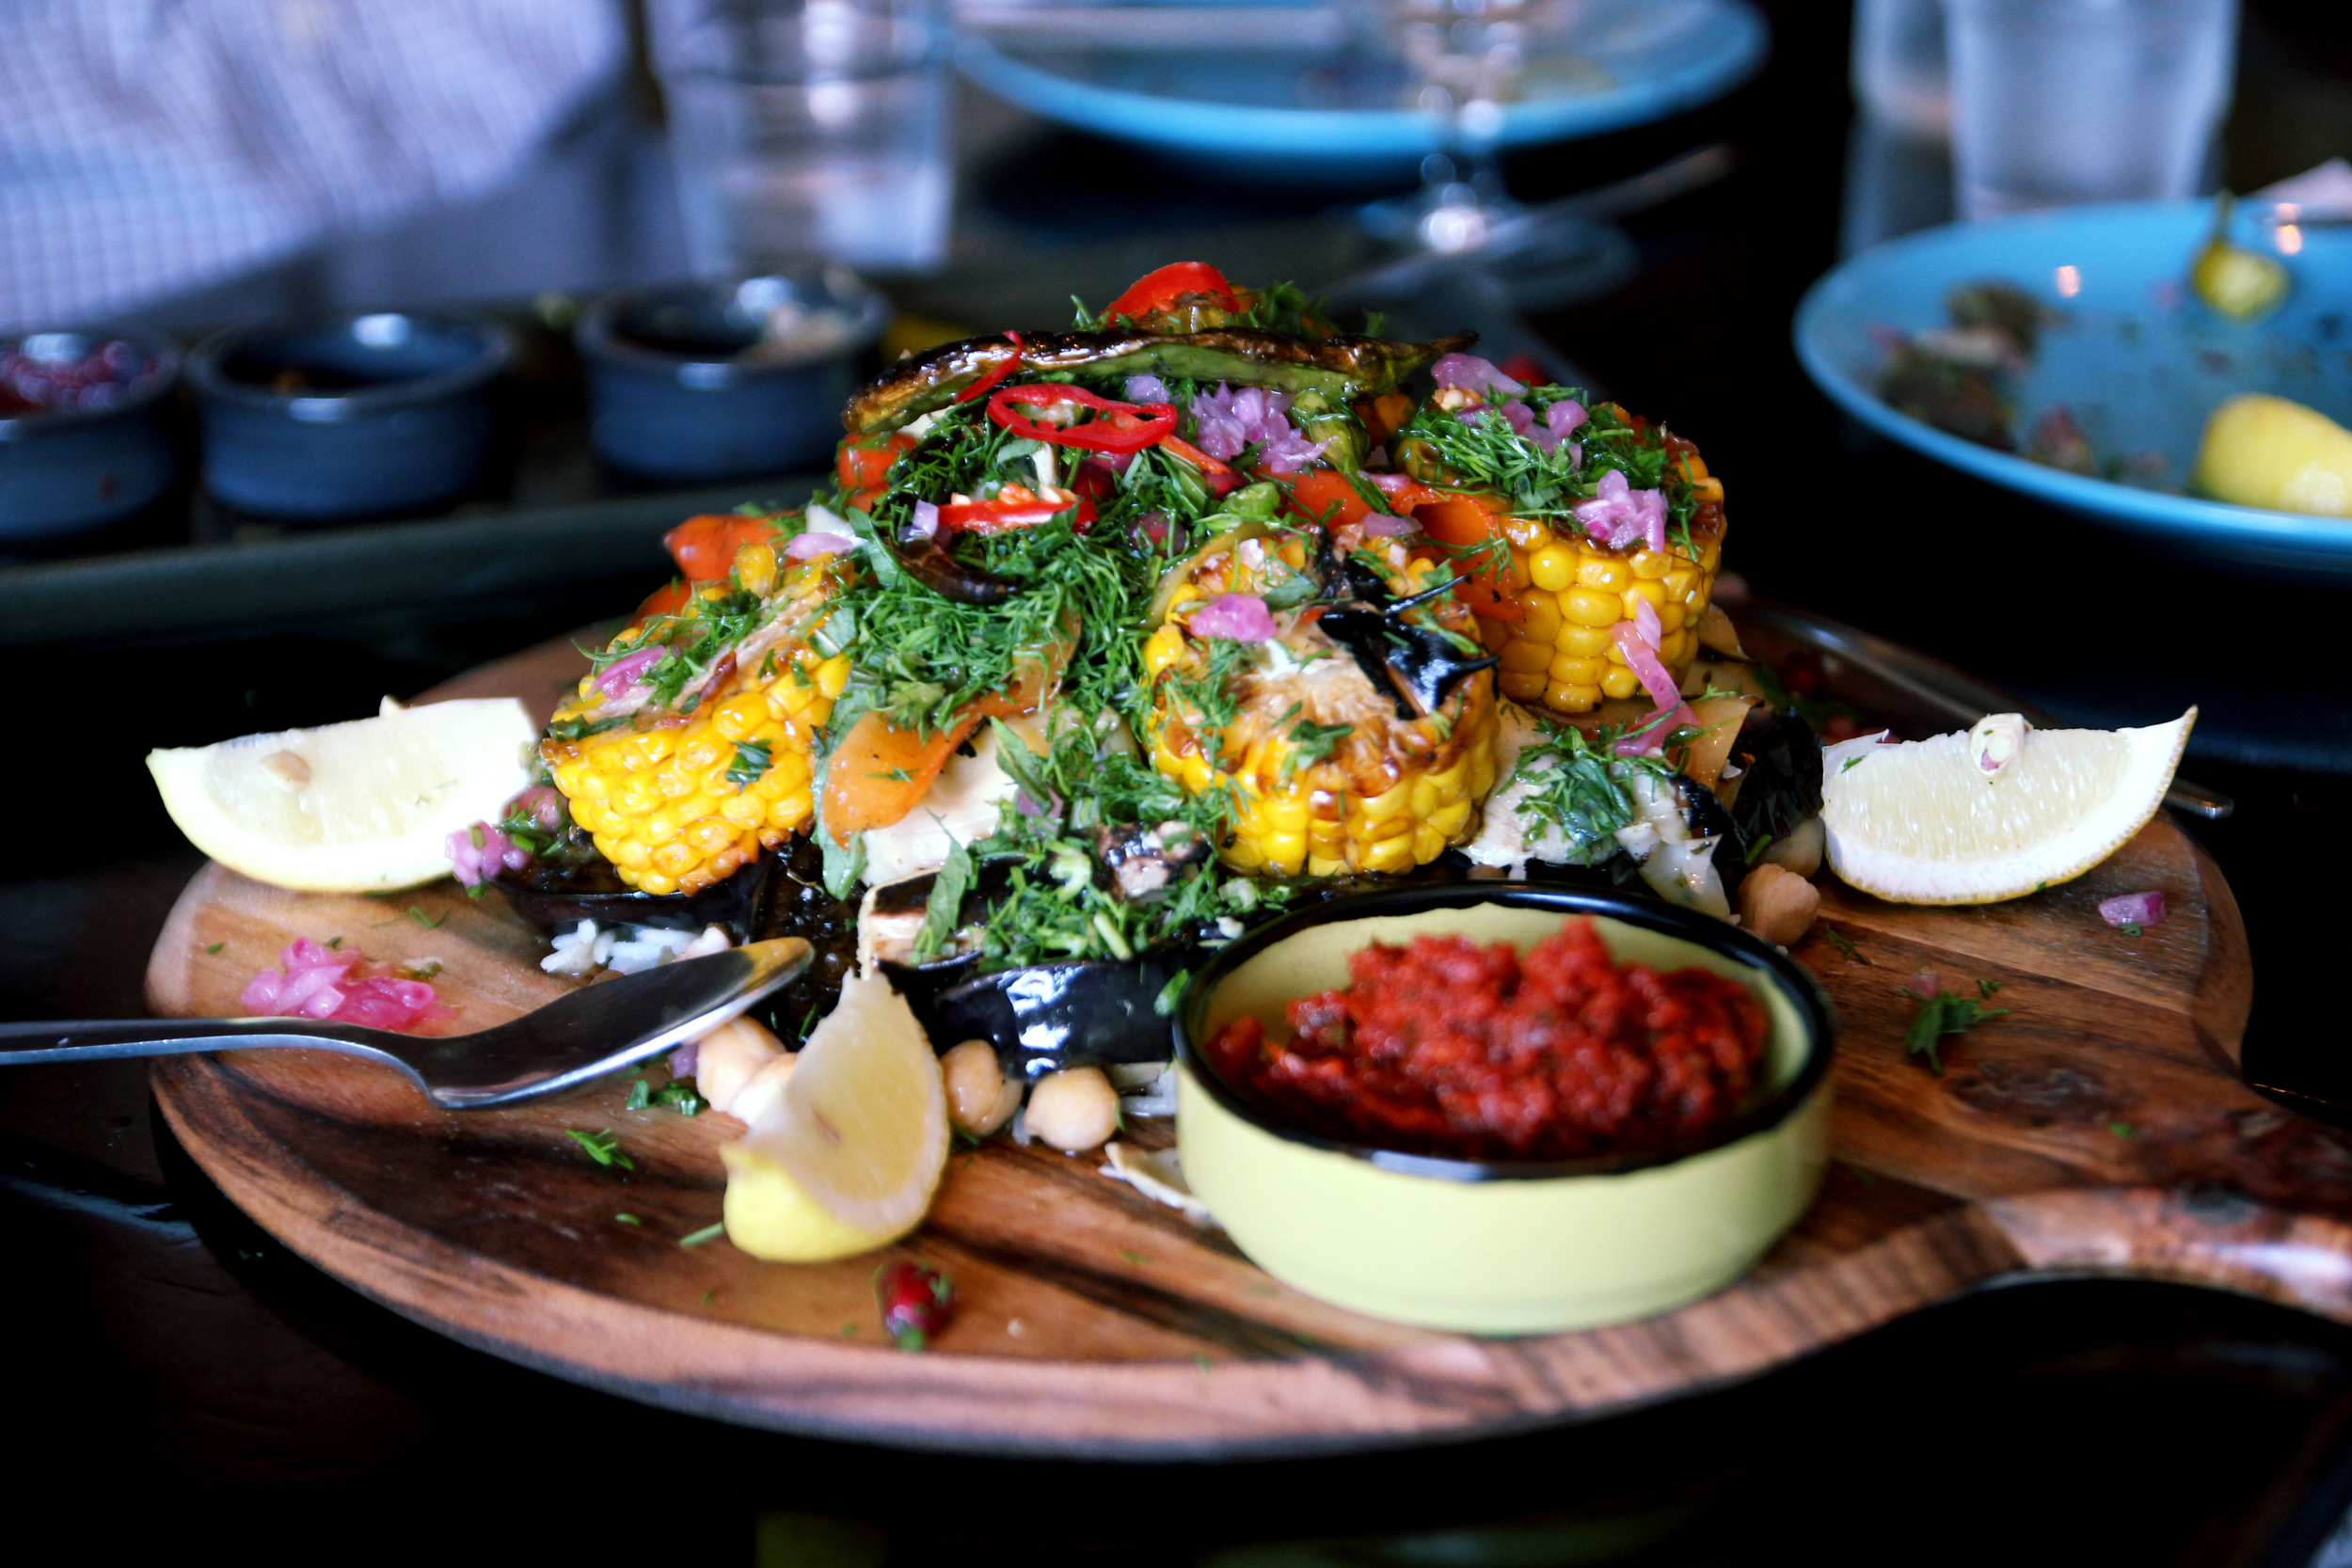 Ottoman Grill warm barbecued vegetables with lentils, Persian rice, mint & dill